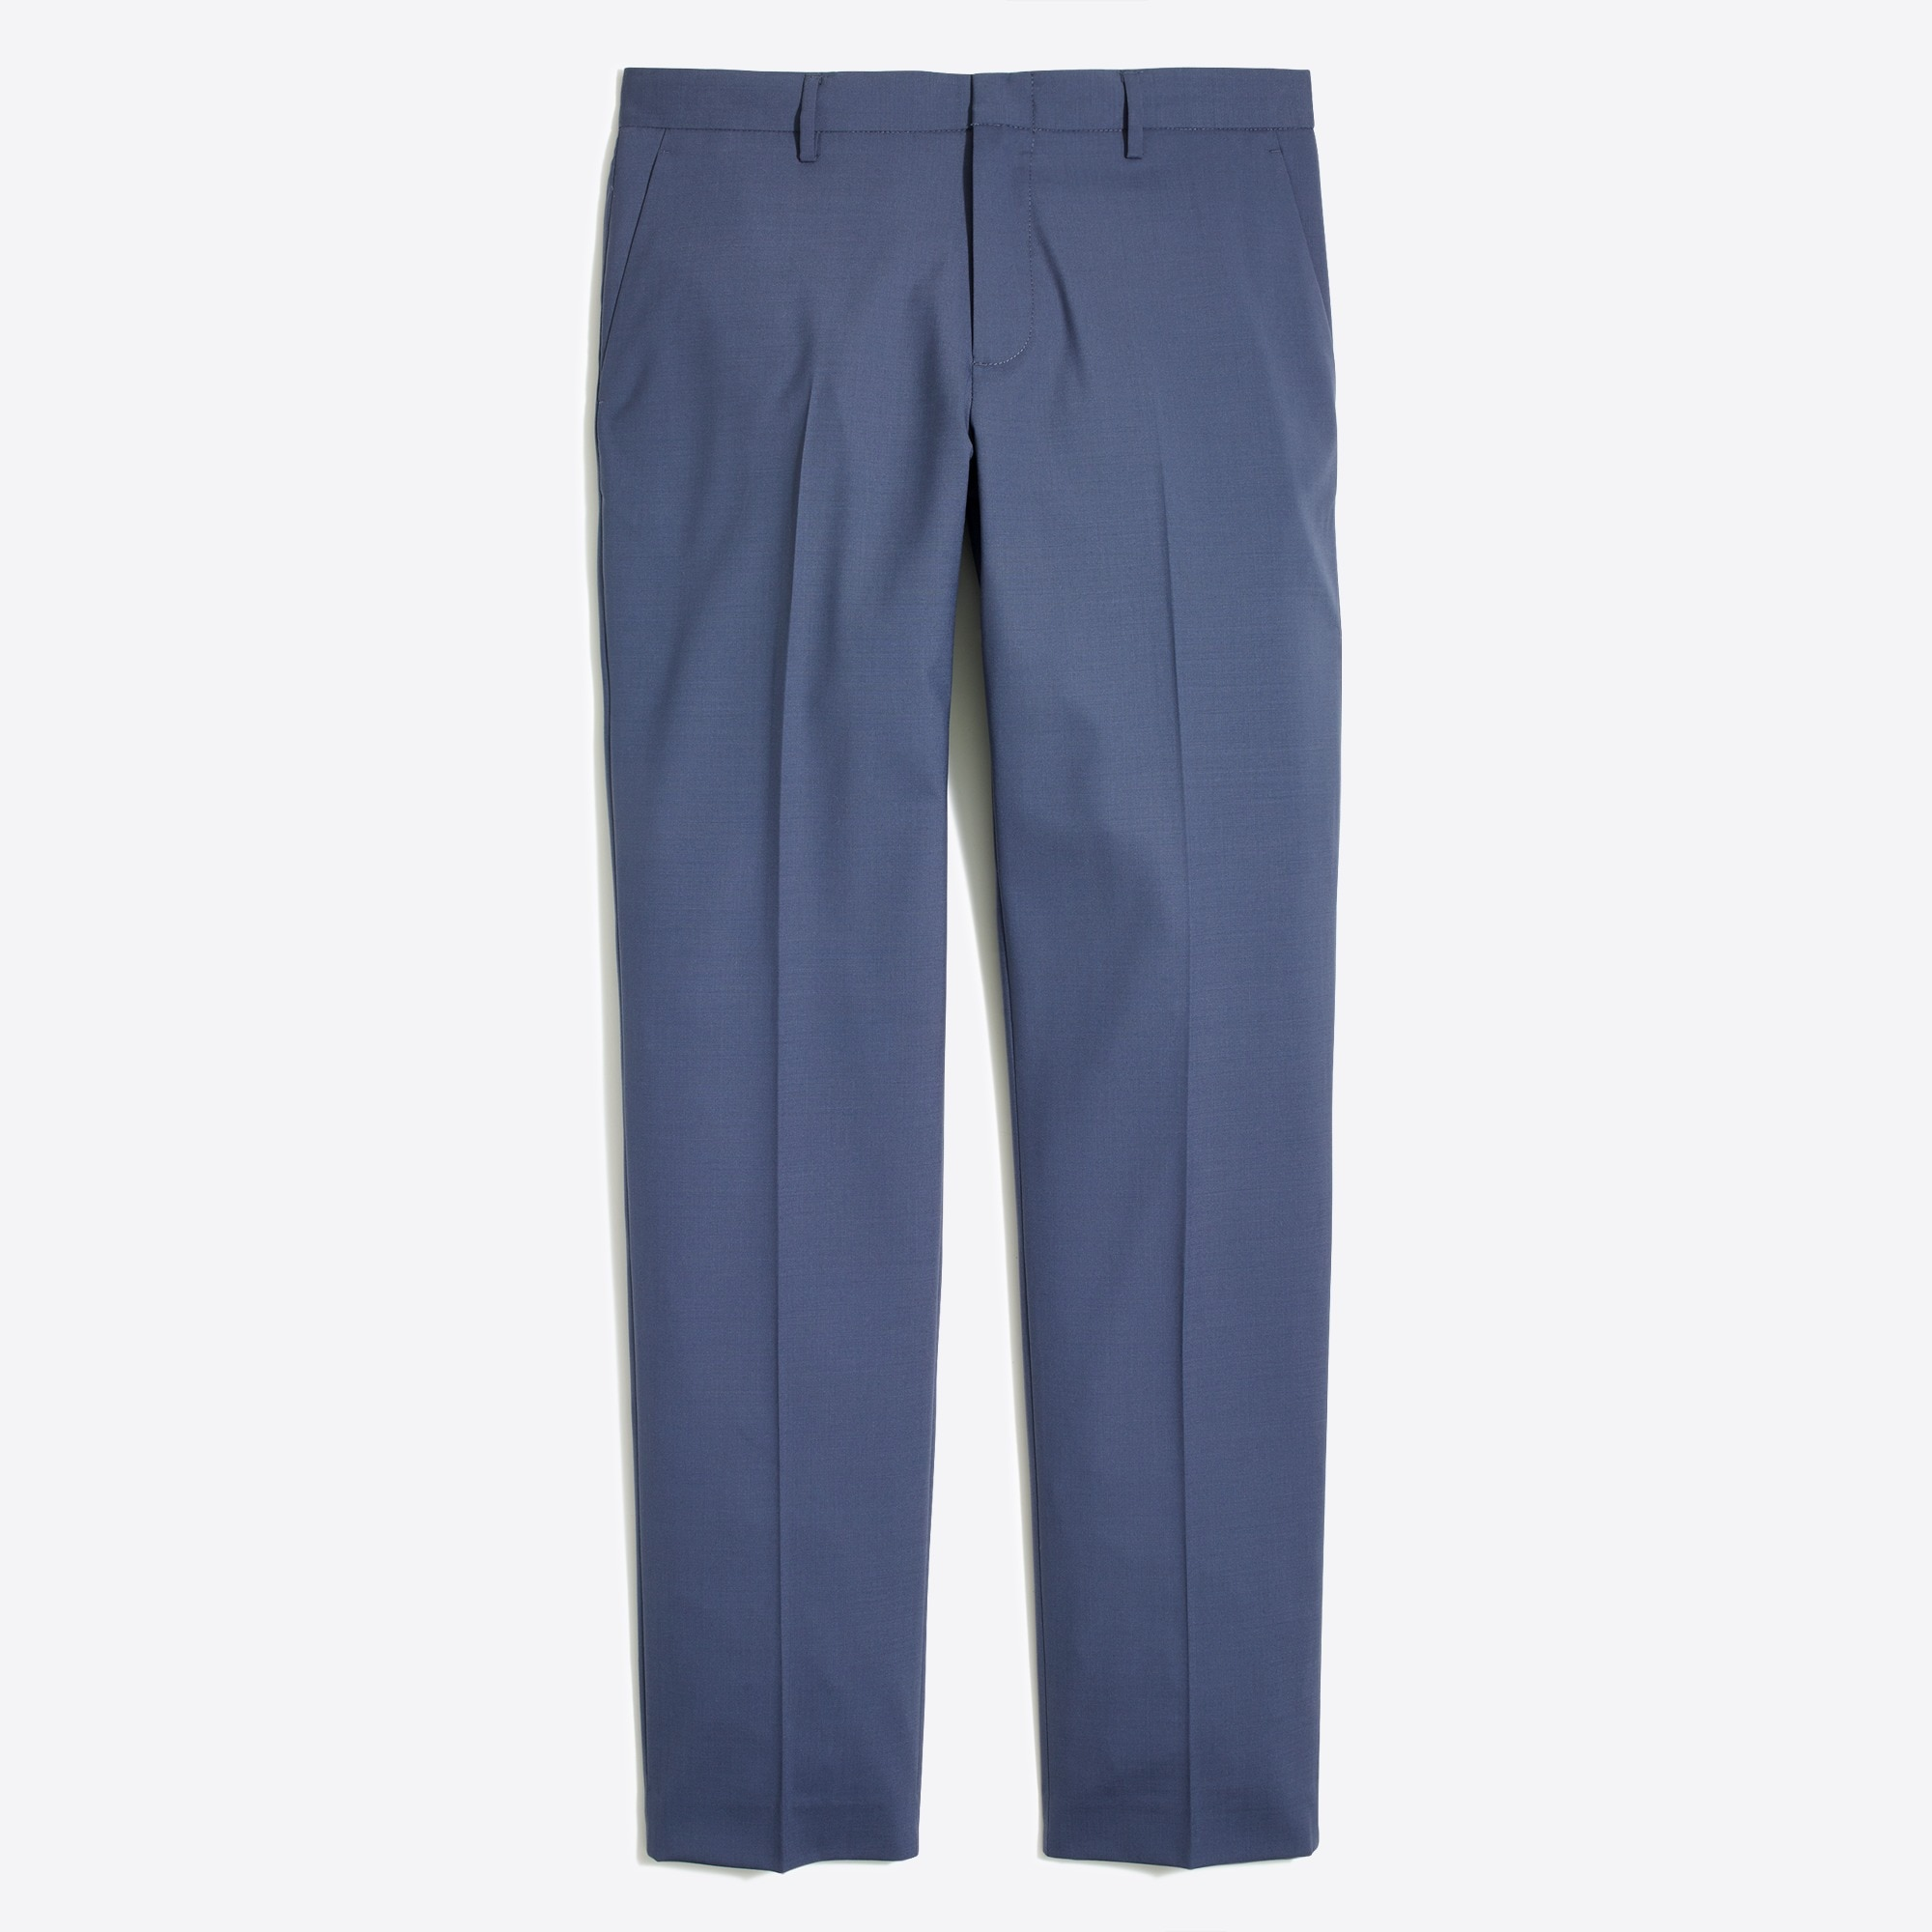 Slim-fit Thompson suit pant in lightweight flex wool